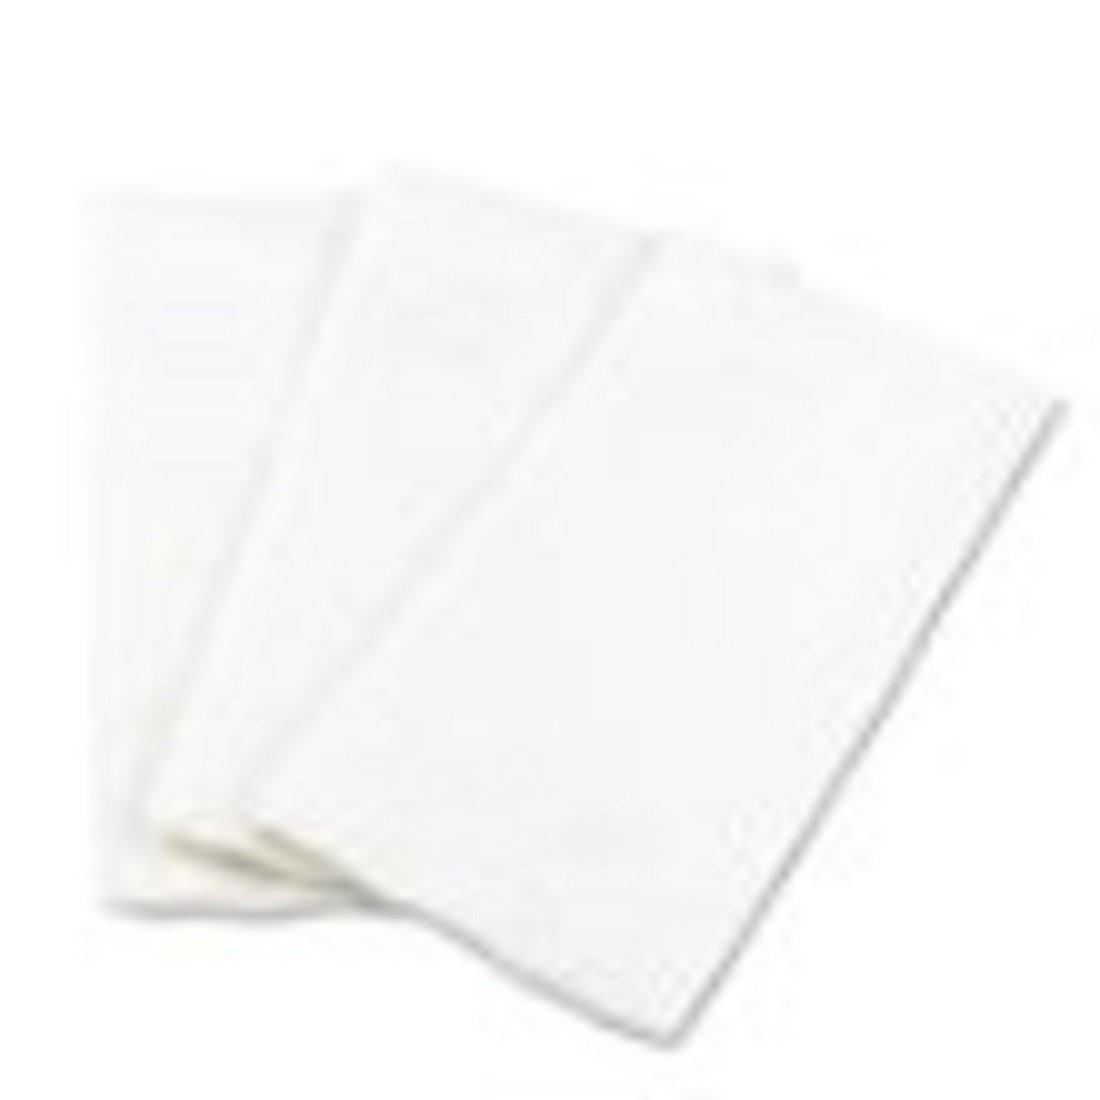 gep31436ct – 1 / 8 Fold Dinner Napkins B0116WVA0O